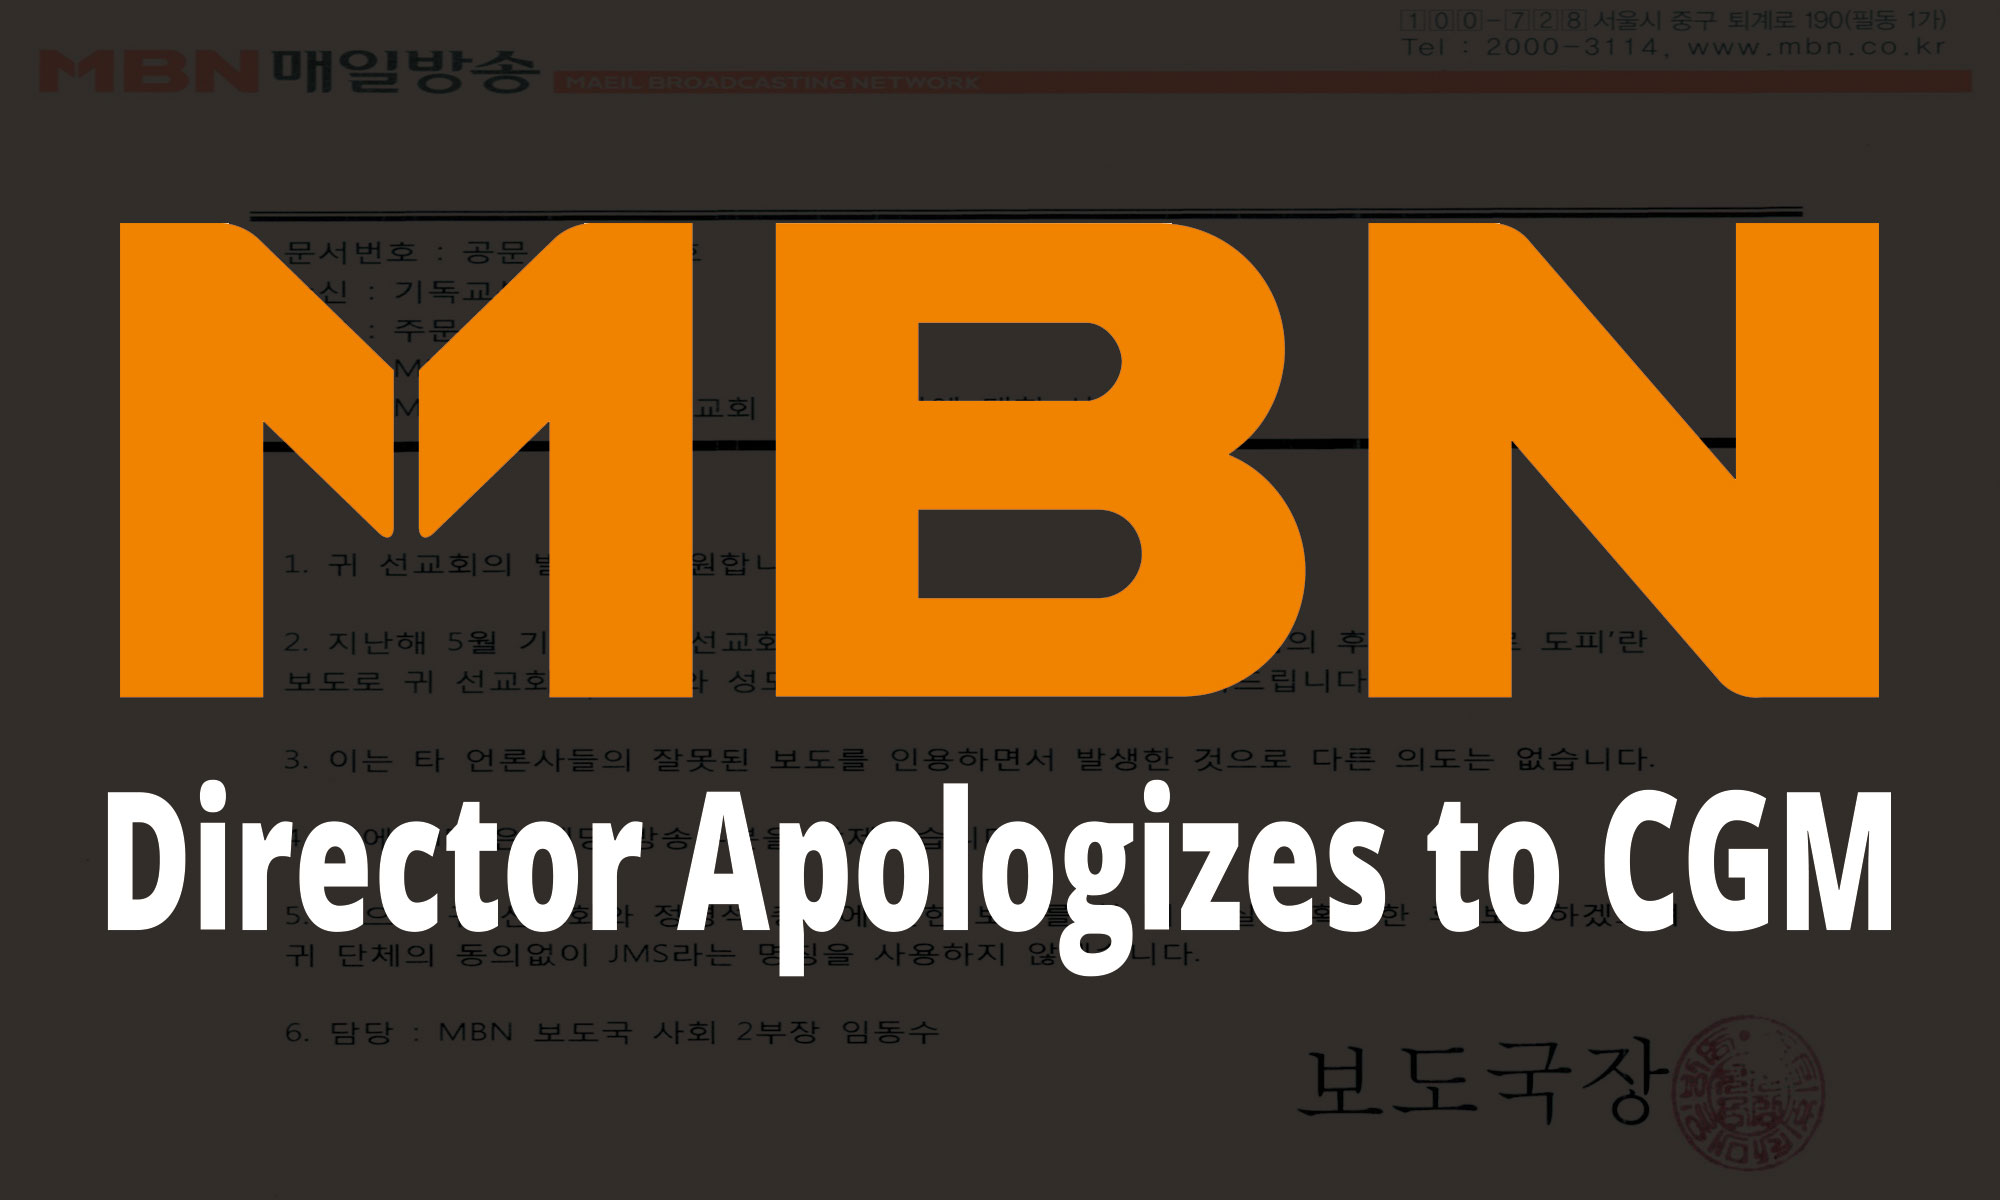 MBN News director apologizes to CGM